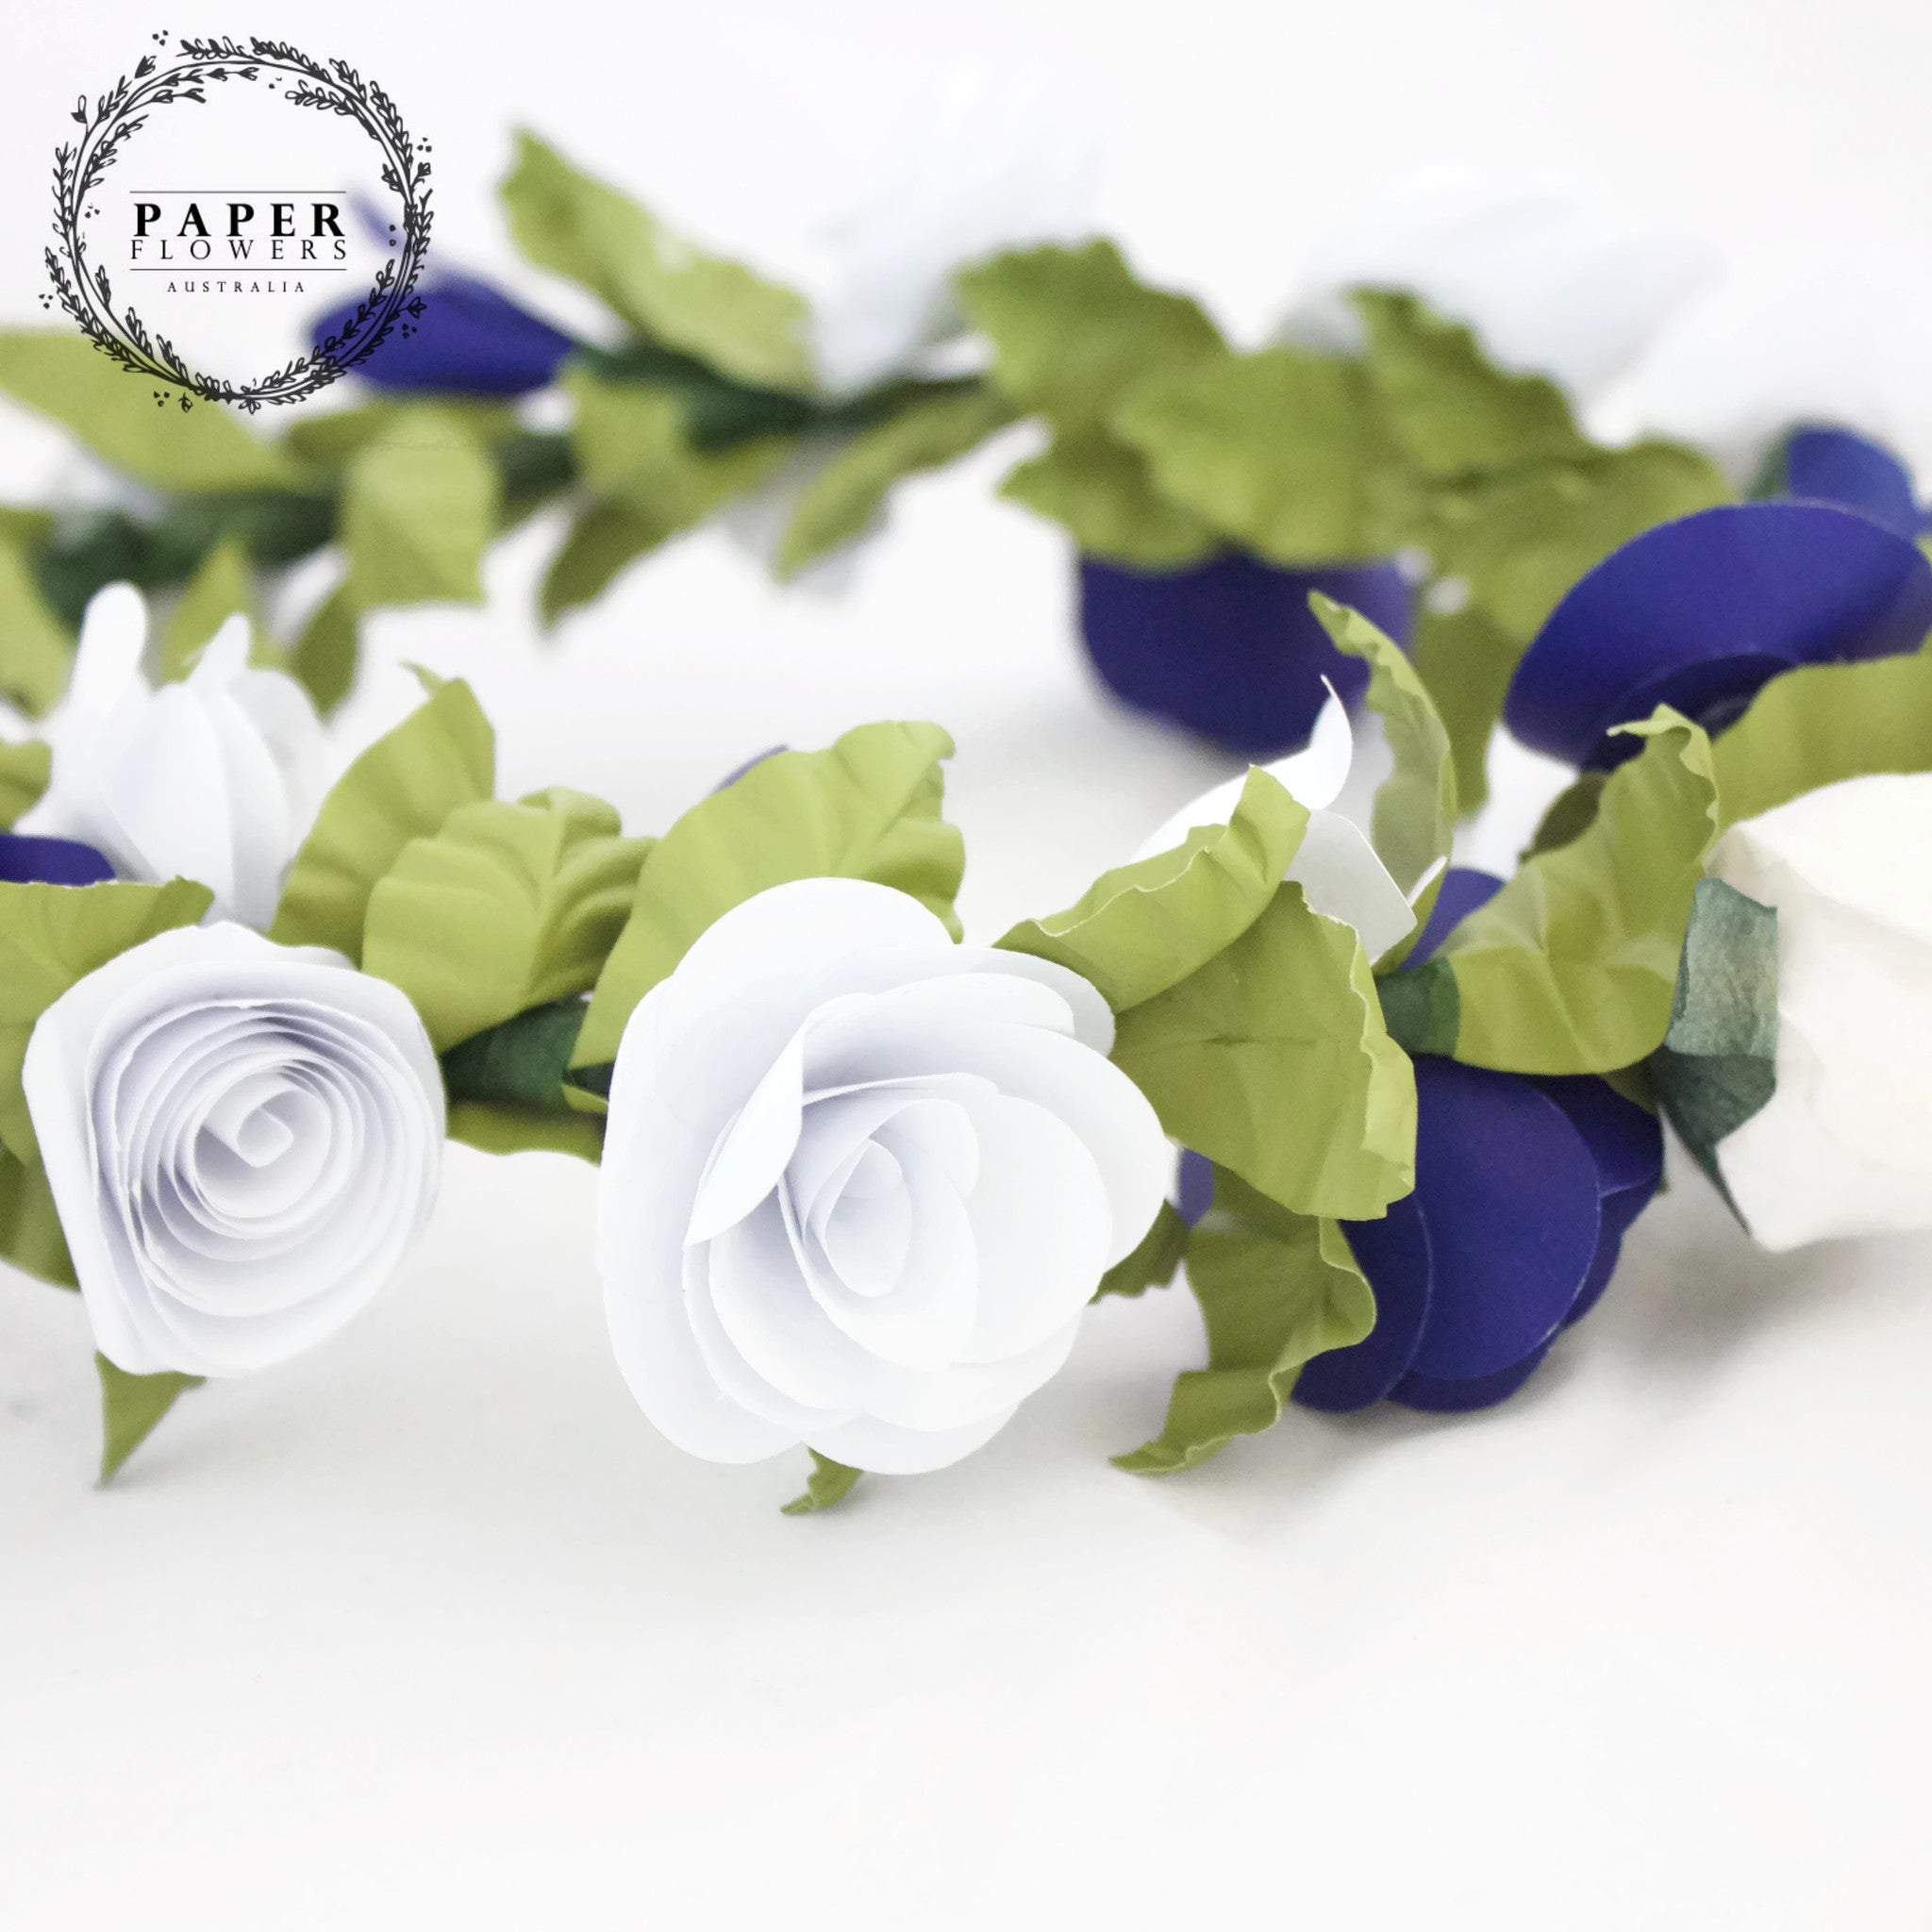 Childs Flower Crown Blue And White Paper Flowers Australia